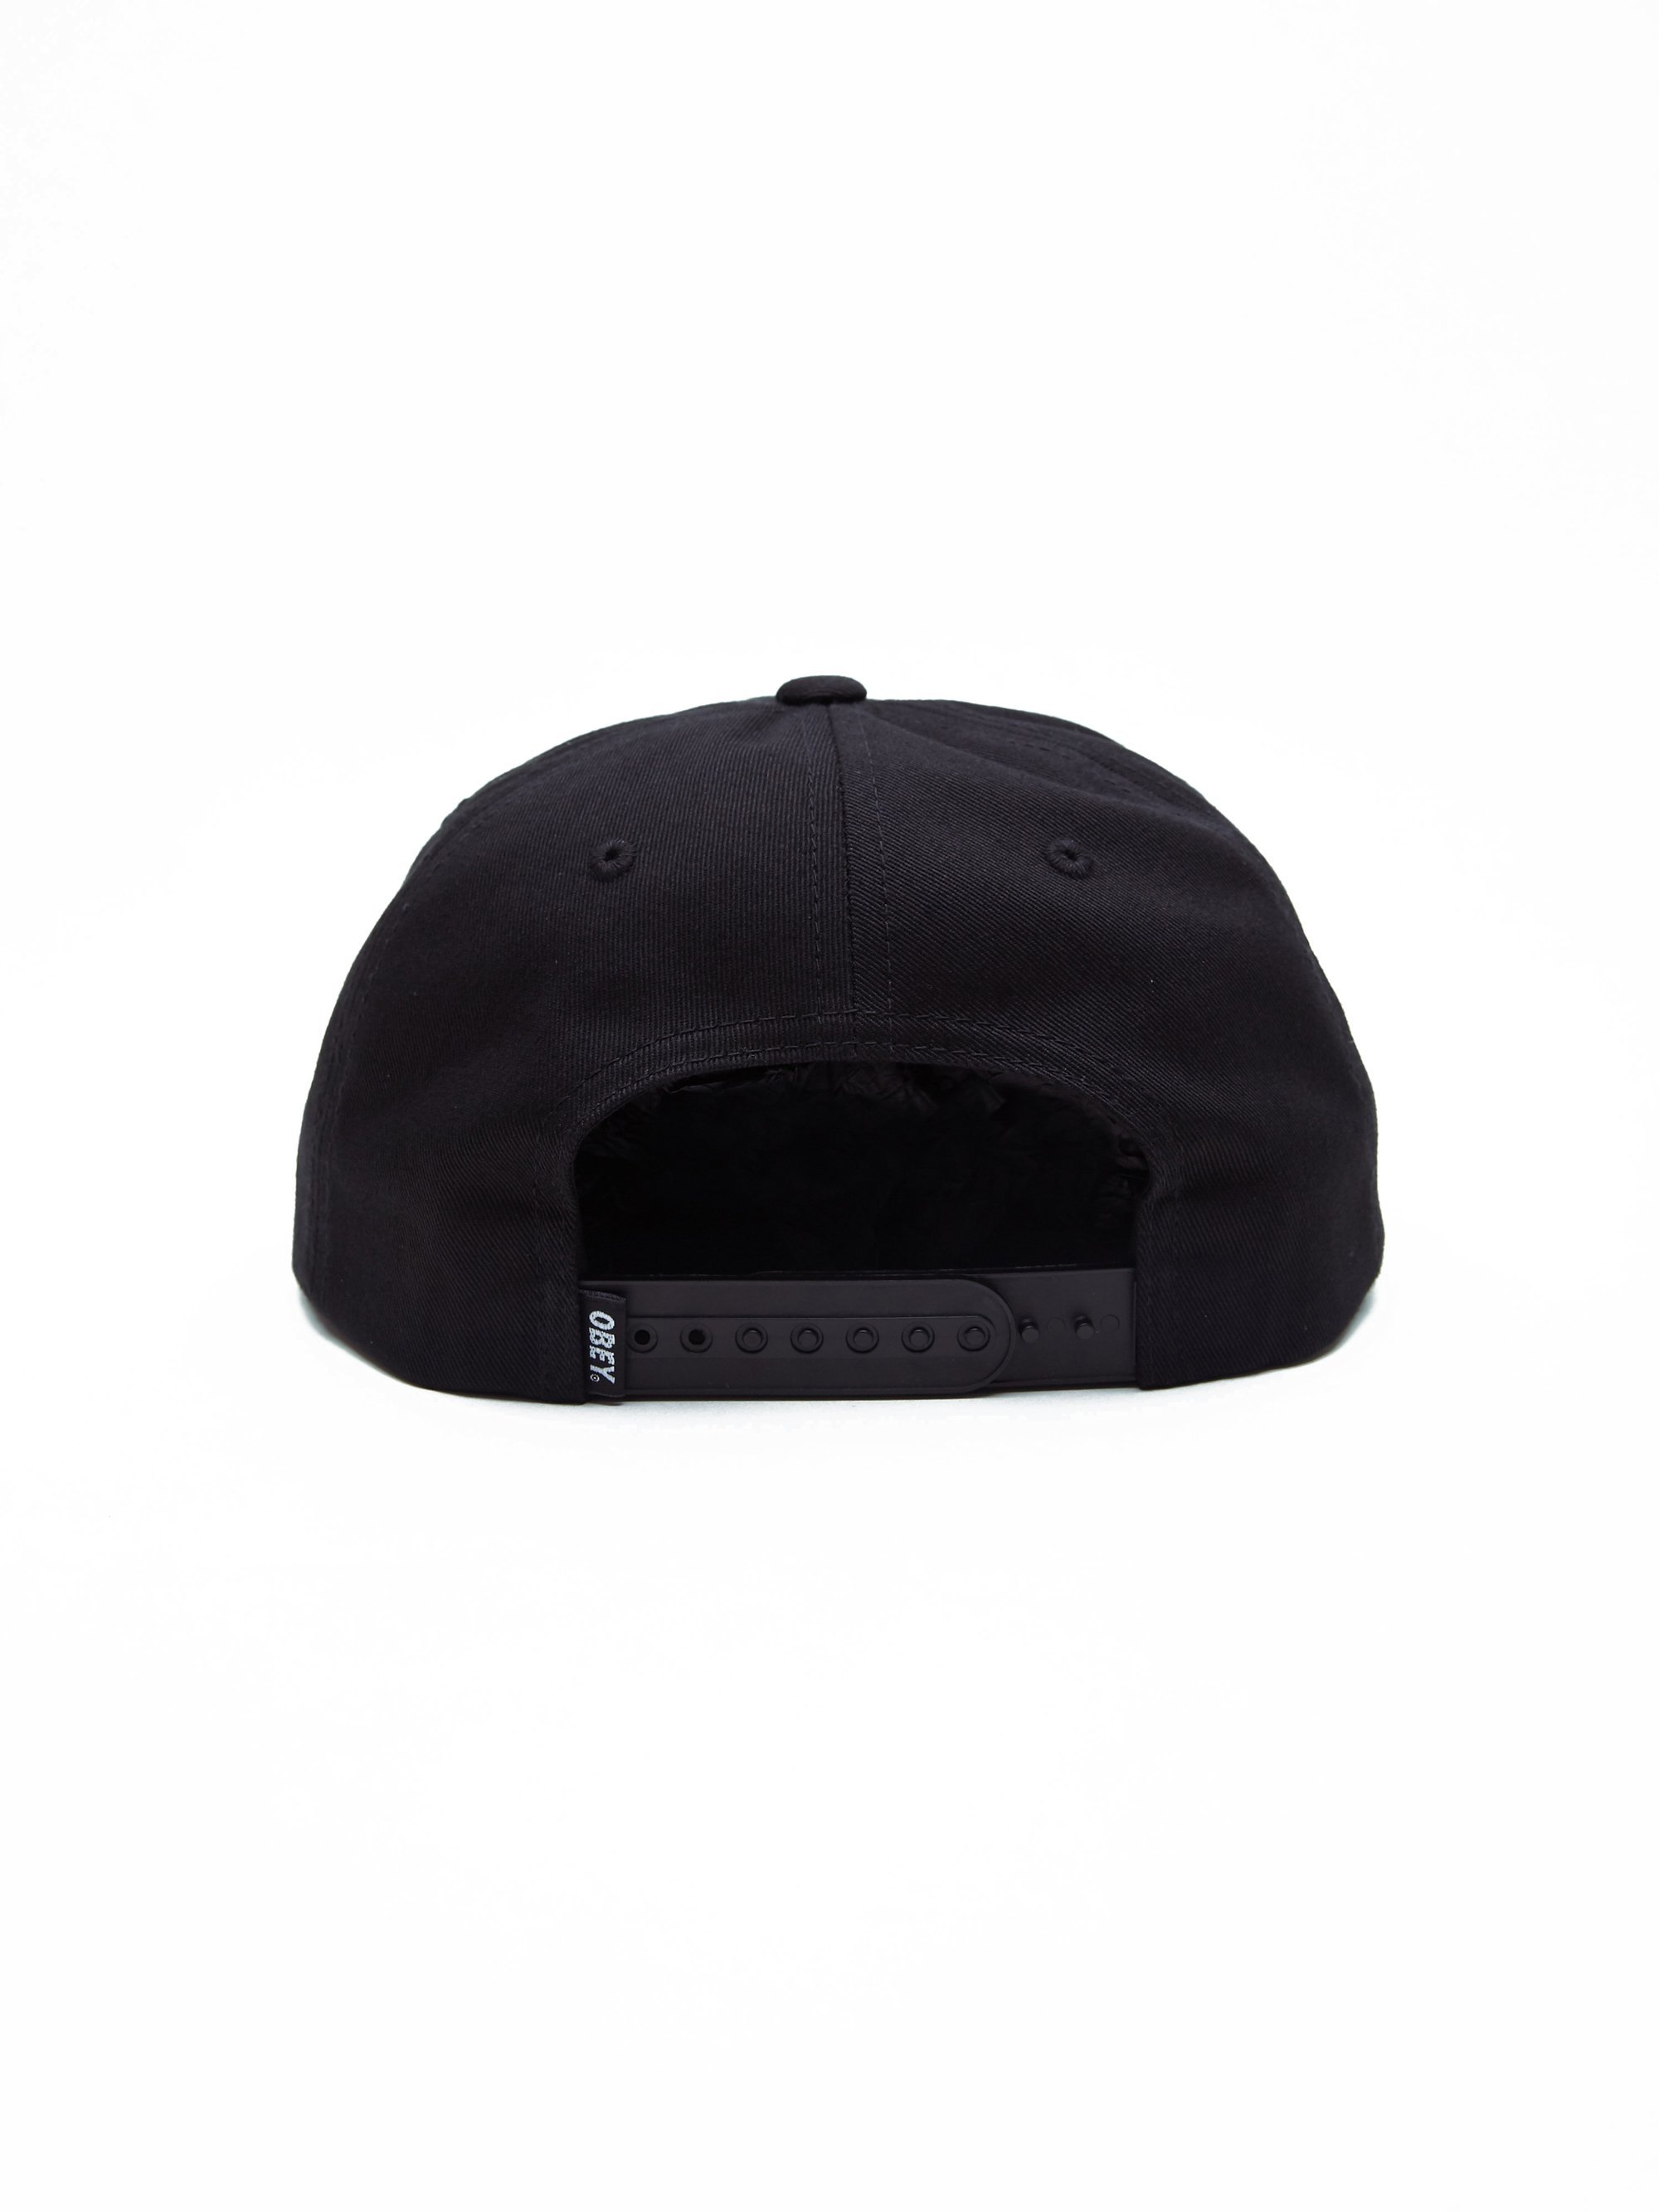 OBEY_Vanish_6_Panel_Snapback_100580188_BLK_2_2000x.jpg